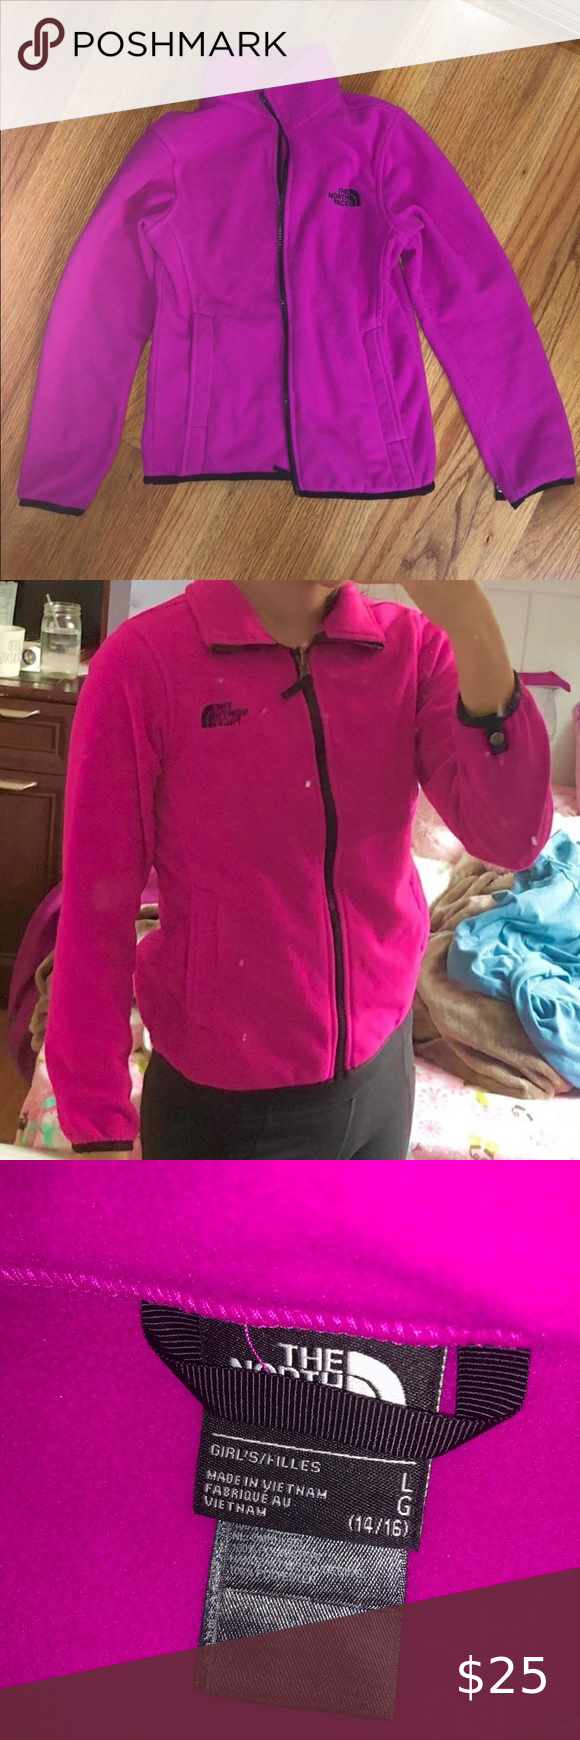 Hot Pink North Face Fleece Hot Pink North Face Fleece Size Large In Girls 14 16 Super Warm Thick Comfortable Pink North Face North Face Fleece The North Face [ 1740 x 580 Pixel ]